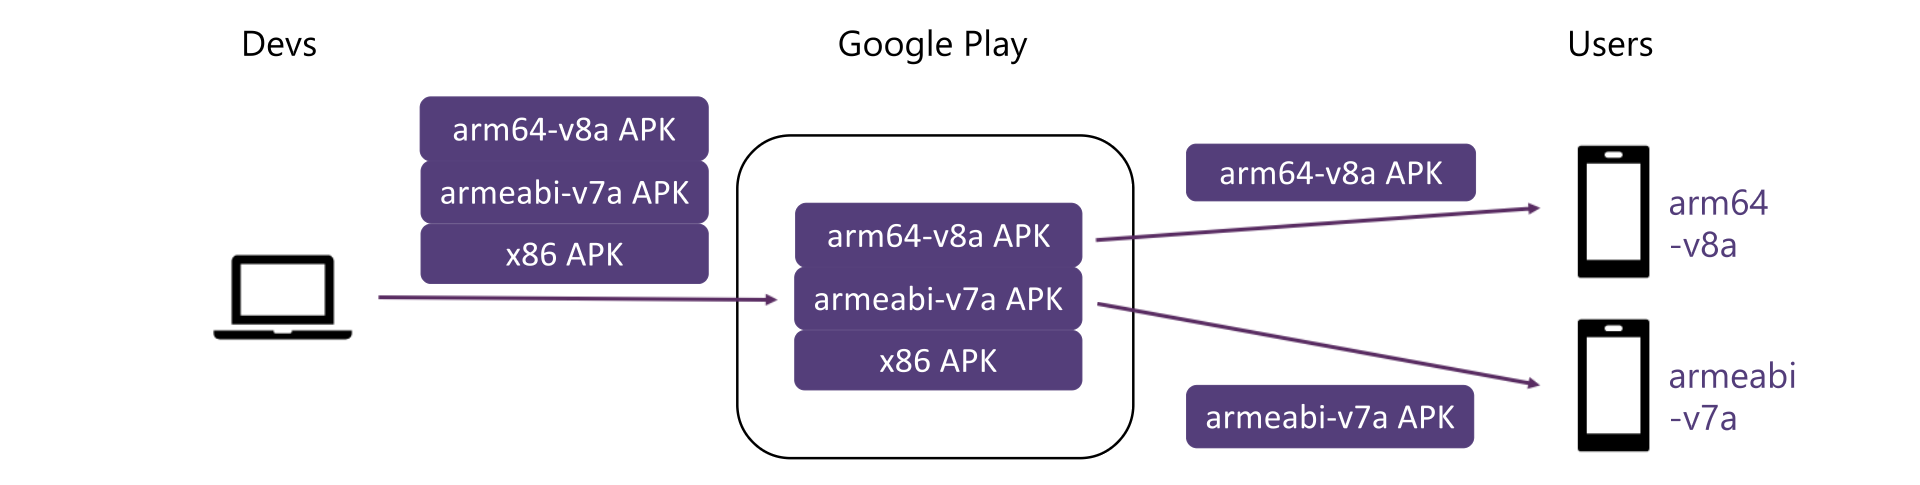 Diagram showing multi-APK distribution